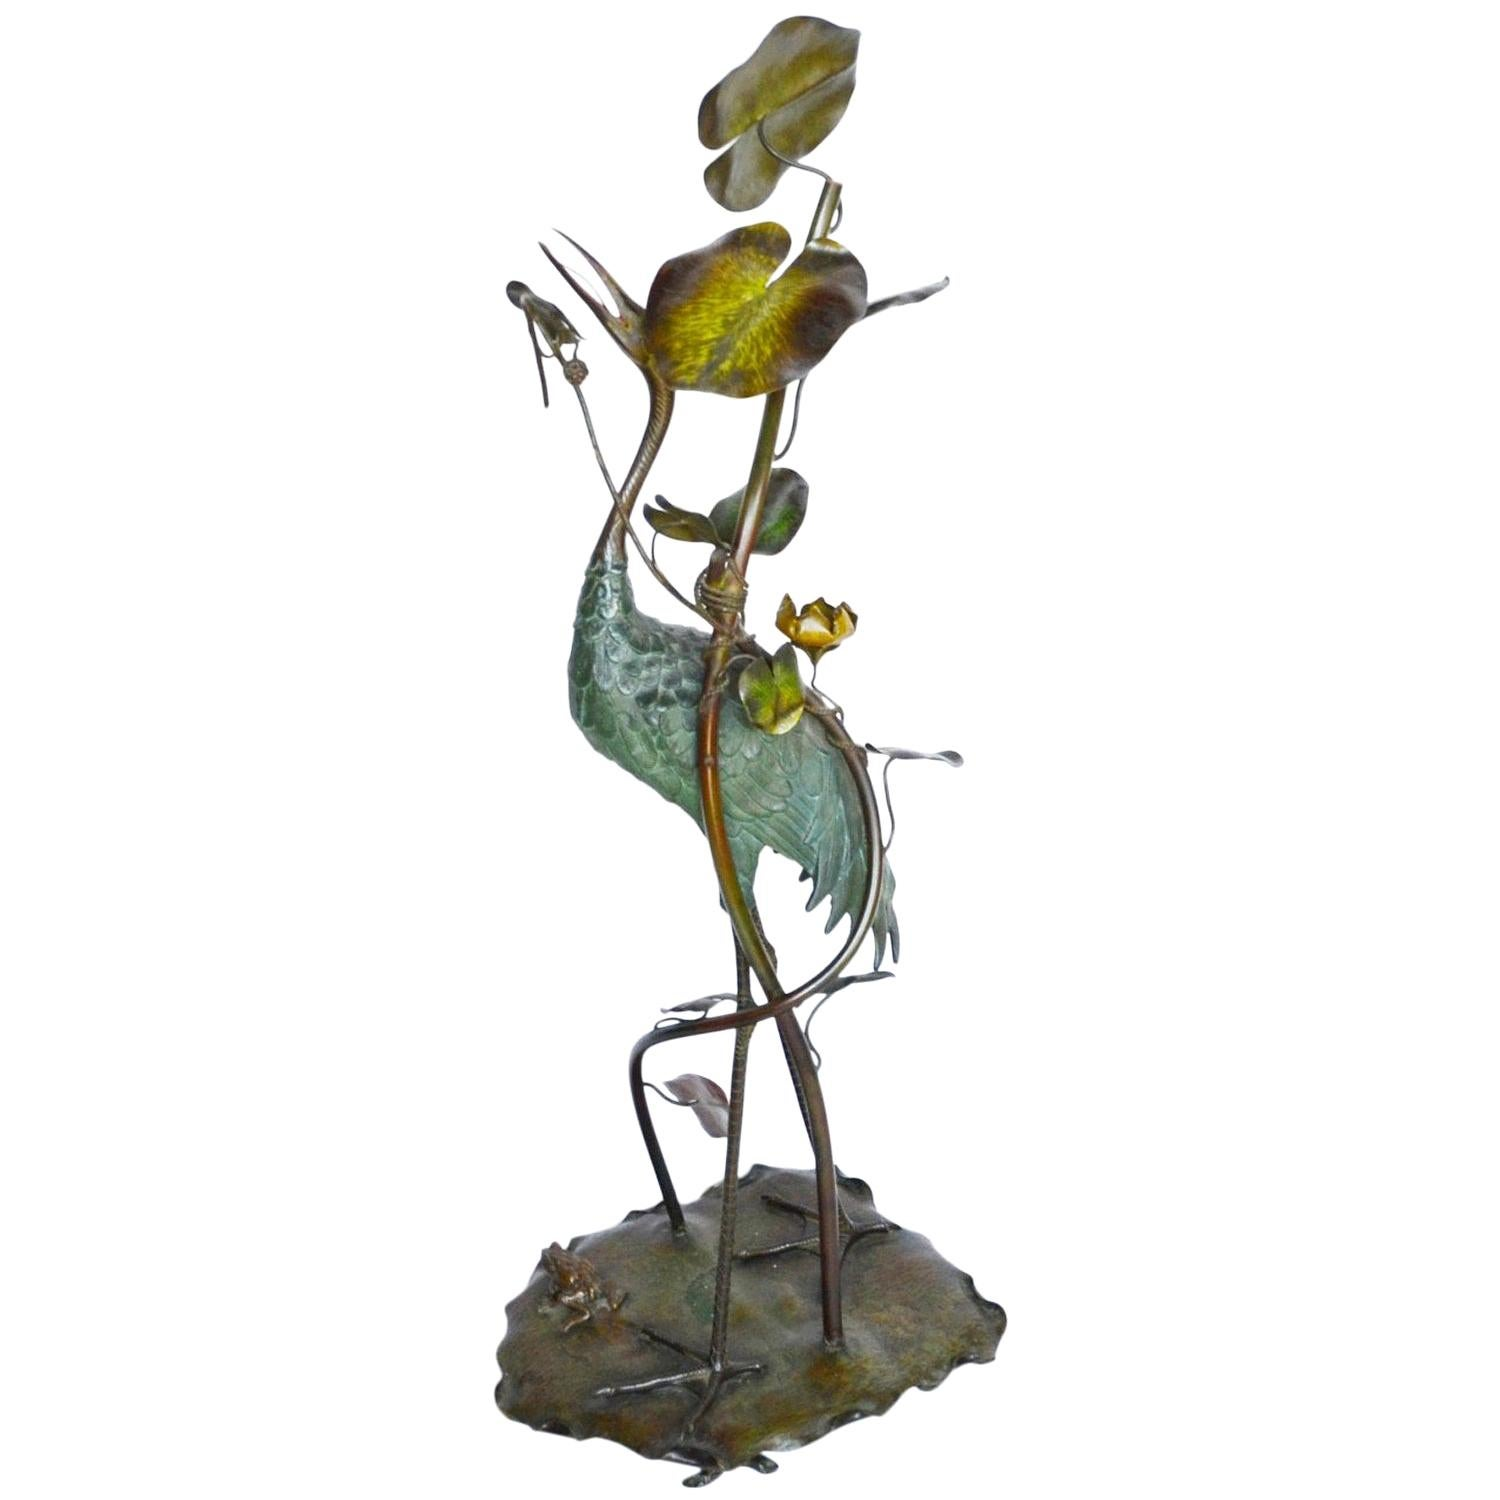 Large Early 20th Century Japanese Bronze Stork Sculpture, Unsigned, circa 1910